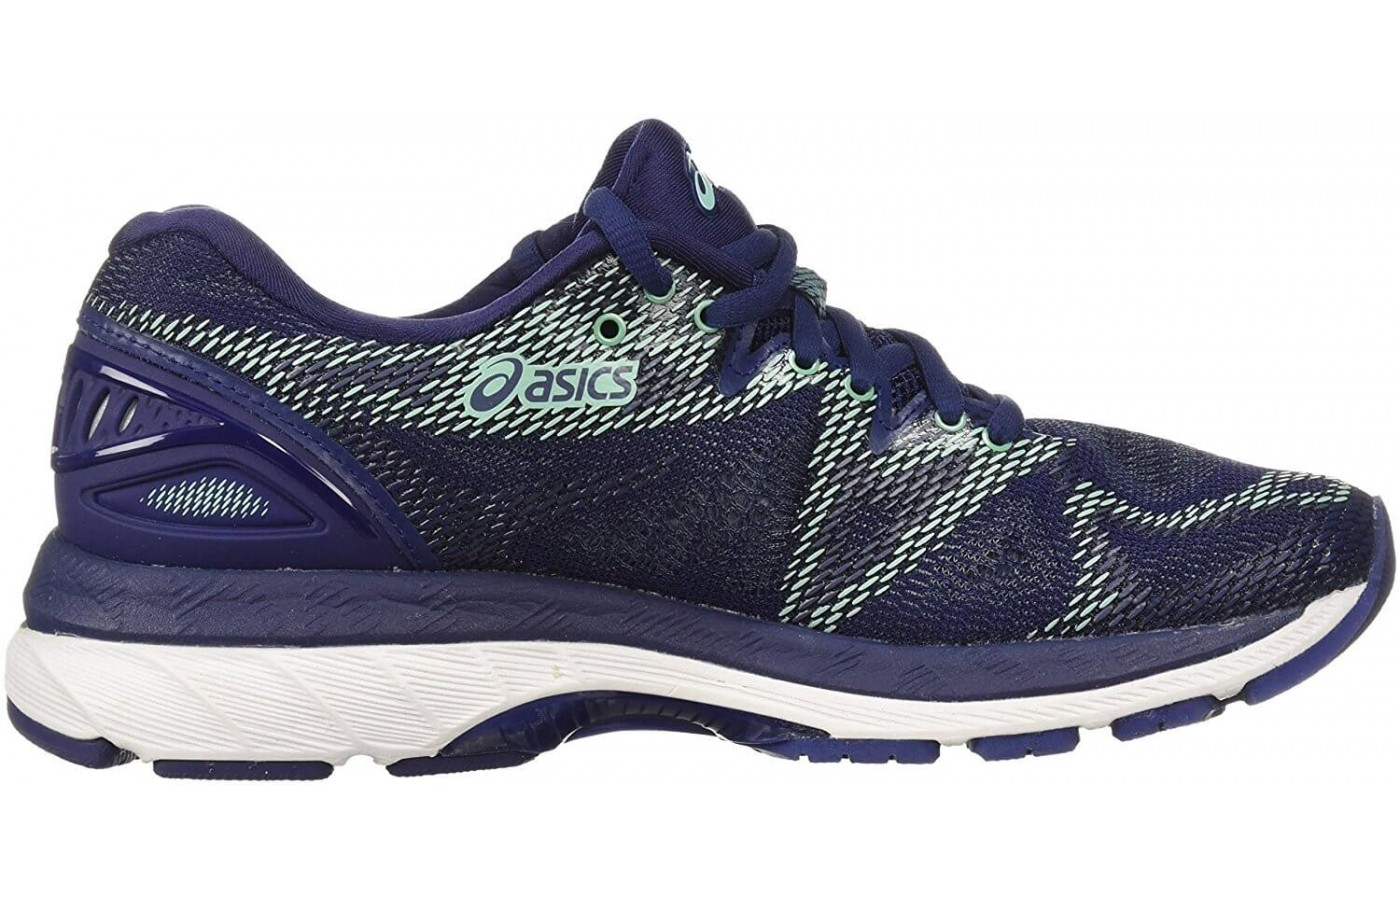 The Gel Nimbus 20 provides runners with firm cushioing